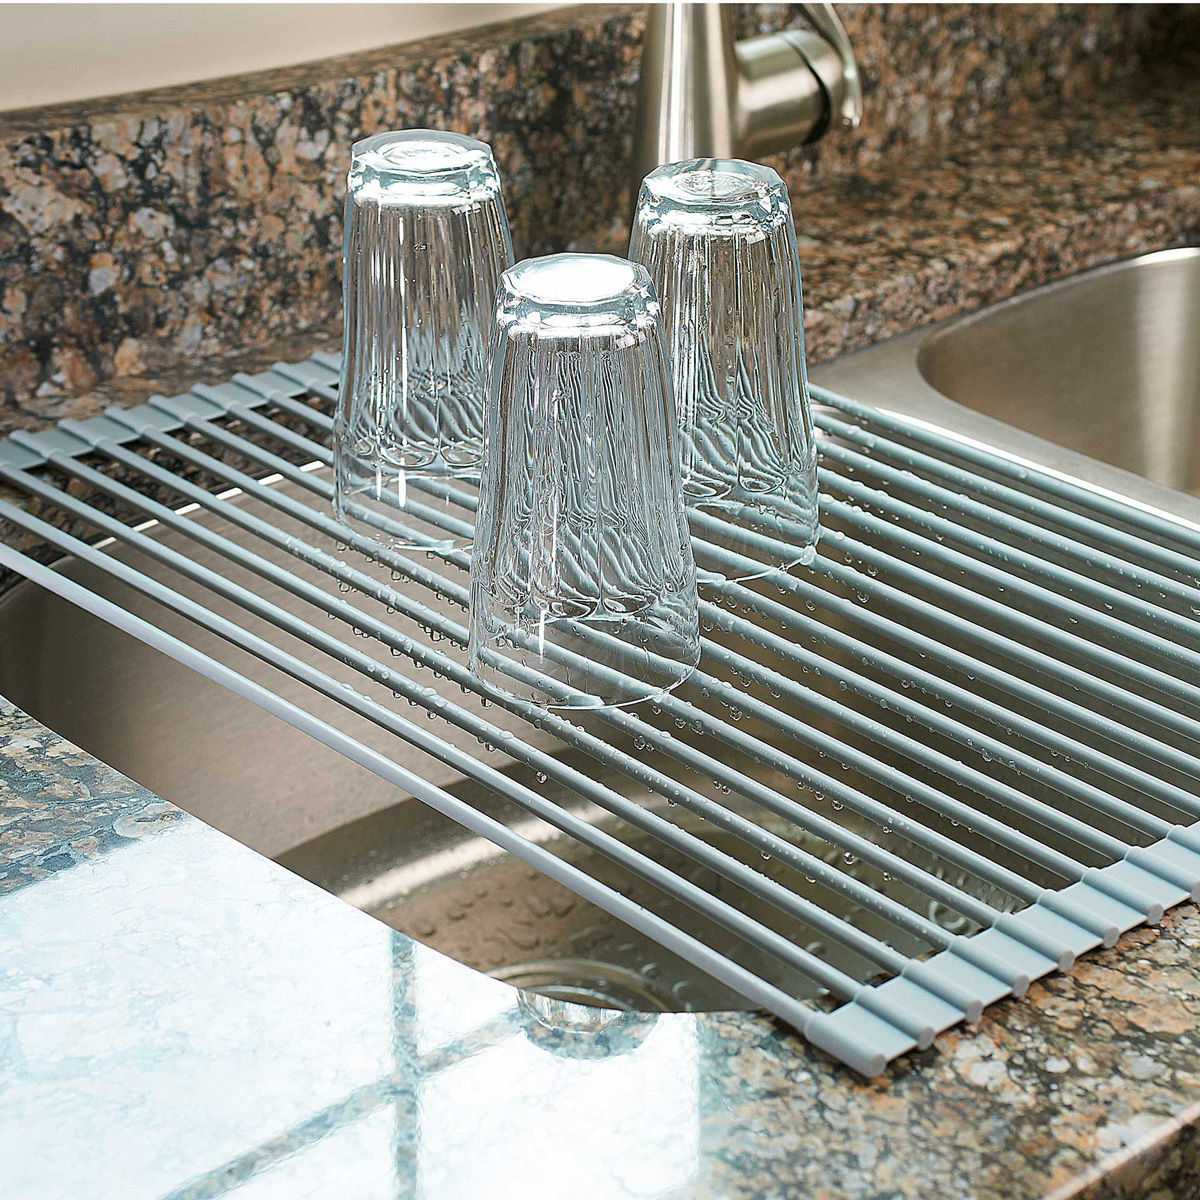 OvertheSink Roll Up Drying Rack  Colander  The Green Head